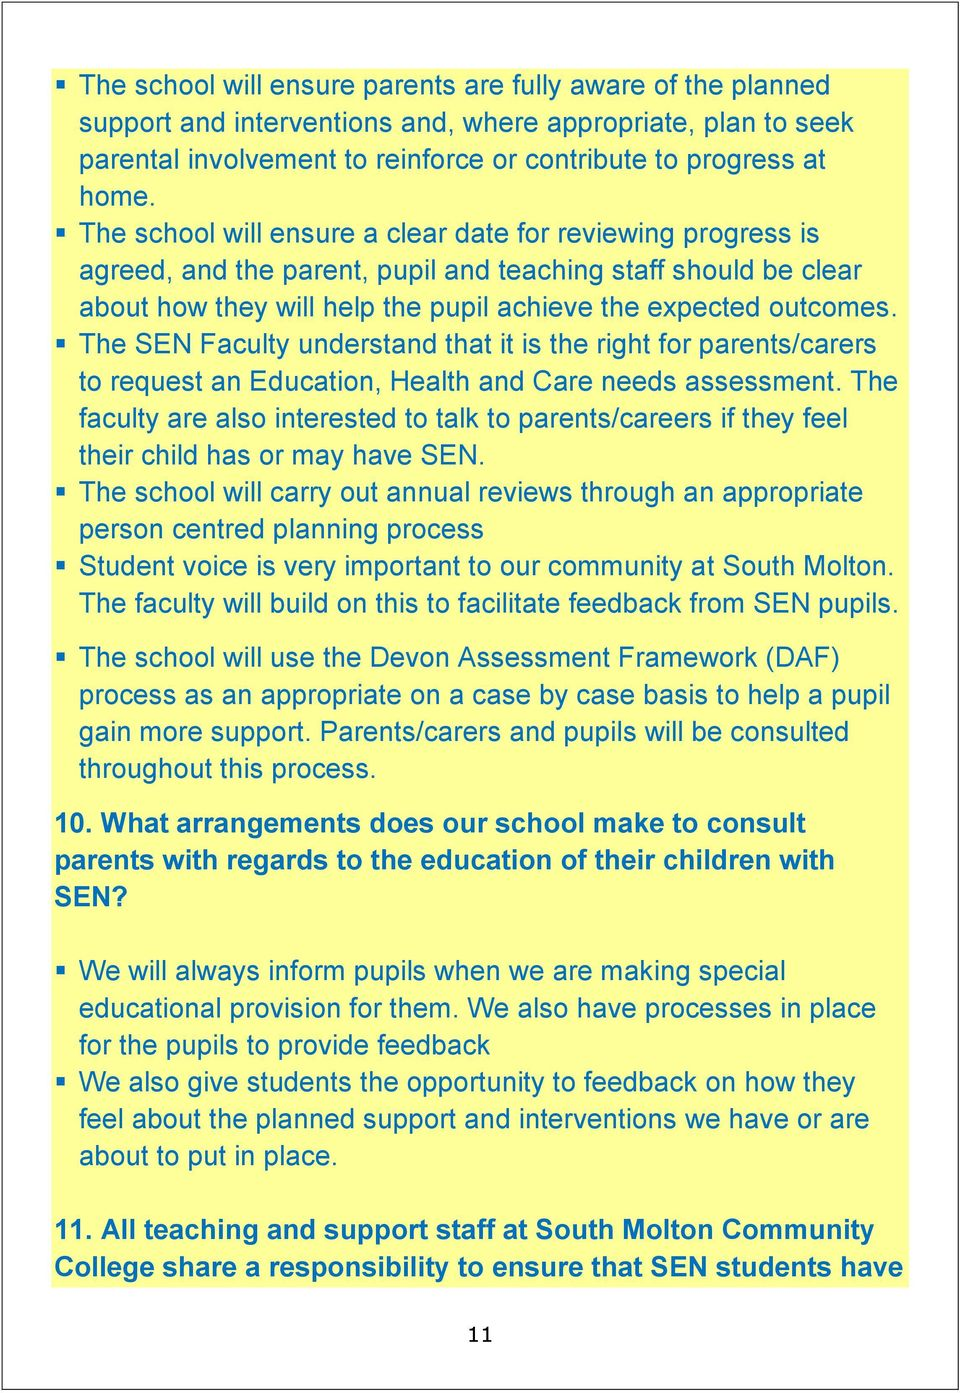 The SEN Faculty understand that it is the right for parents/carers to request an Education, Health and Care needs assessment.